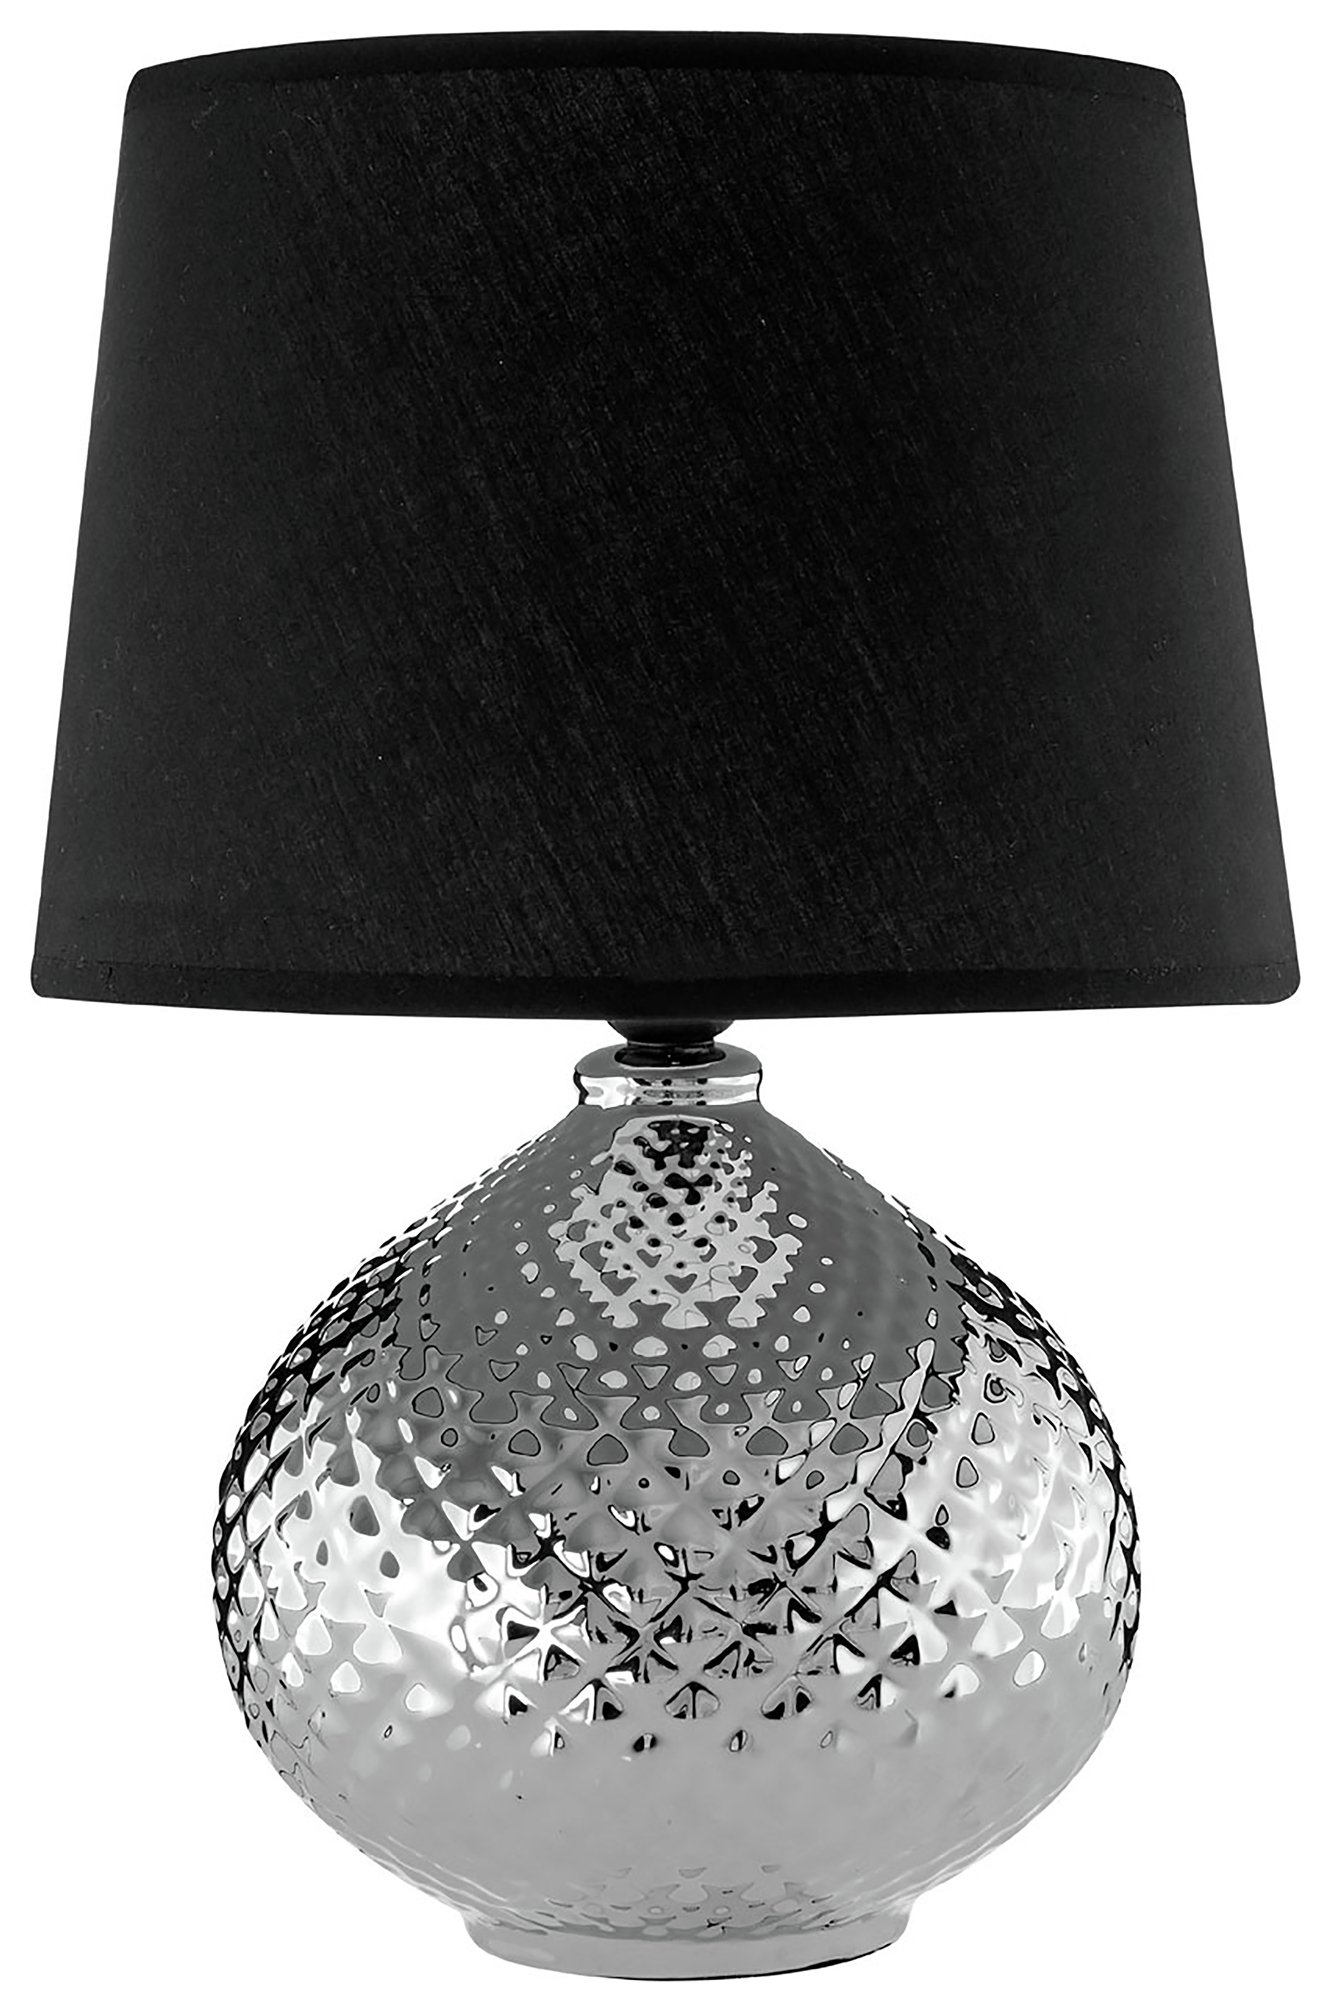 Modern black and silver ceramic pebbles table lamp haysoms - Hetty Ceramic Table Lamp Silver And Black